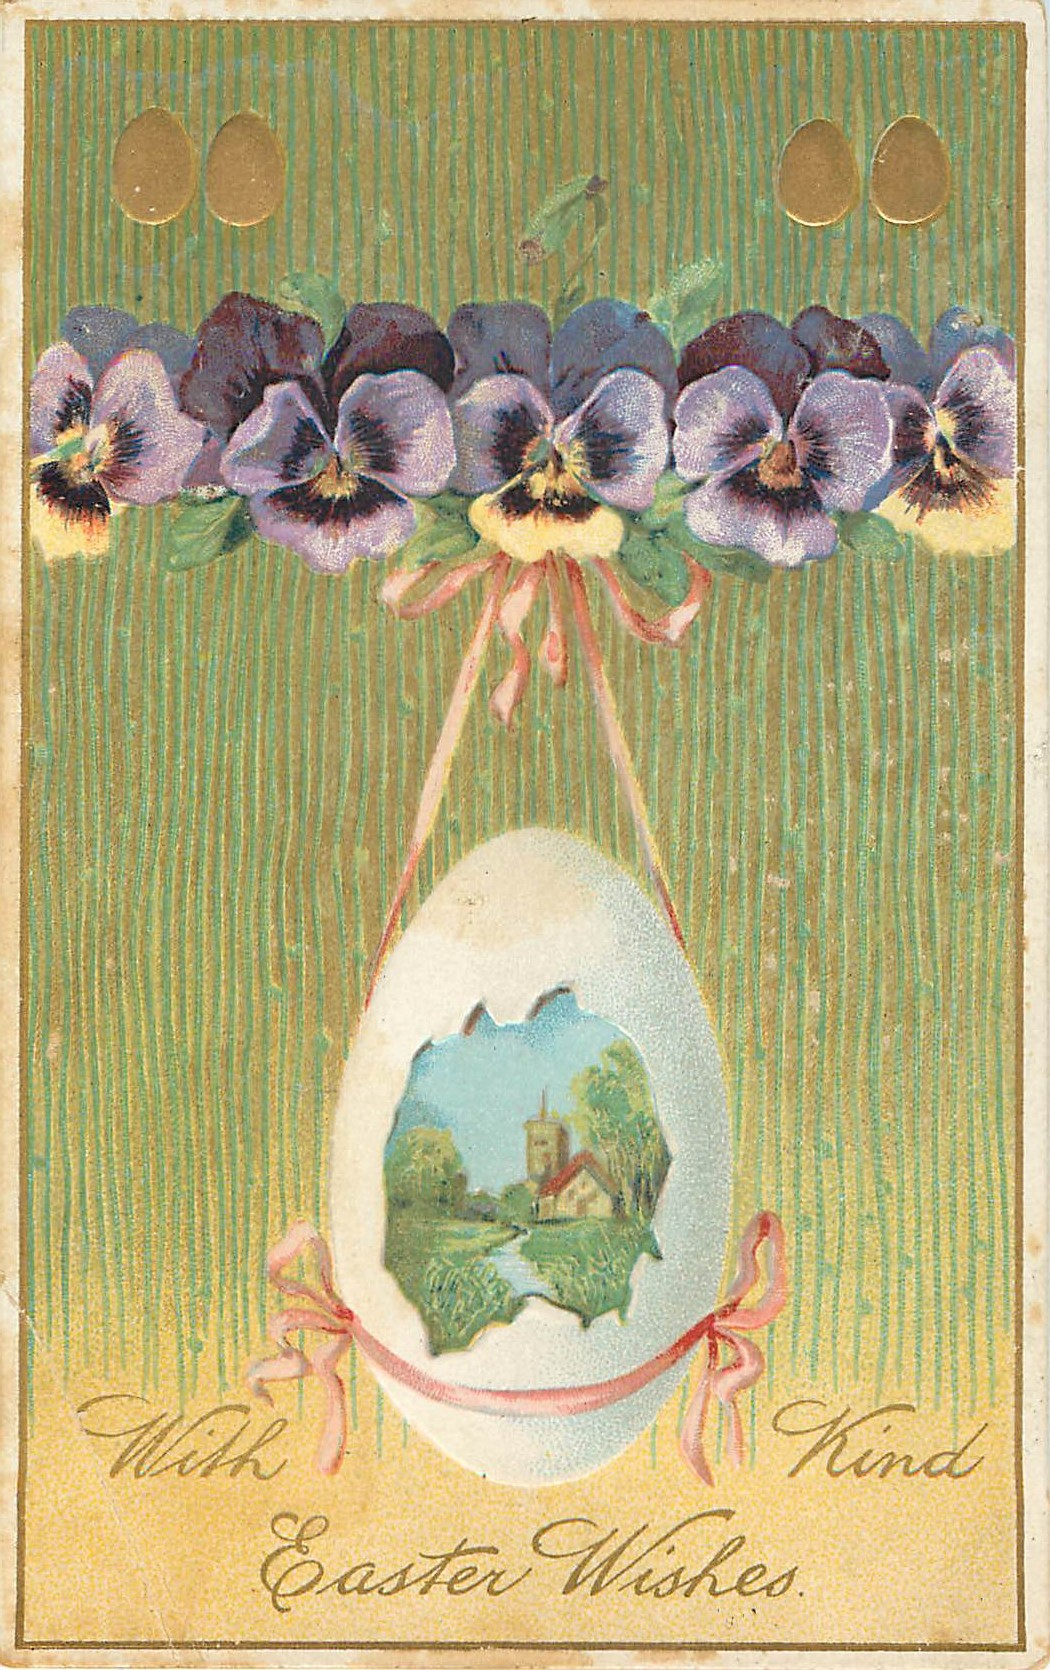 Kind Easter Wishes Pansy